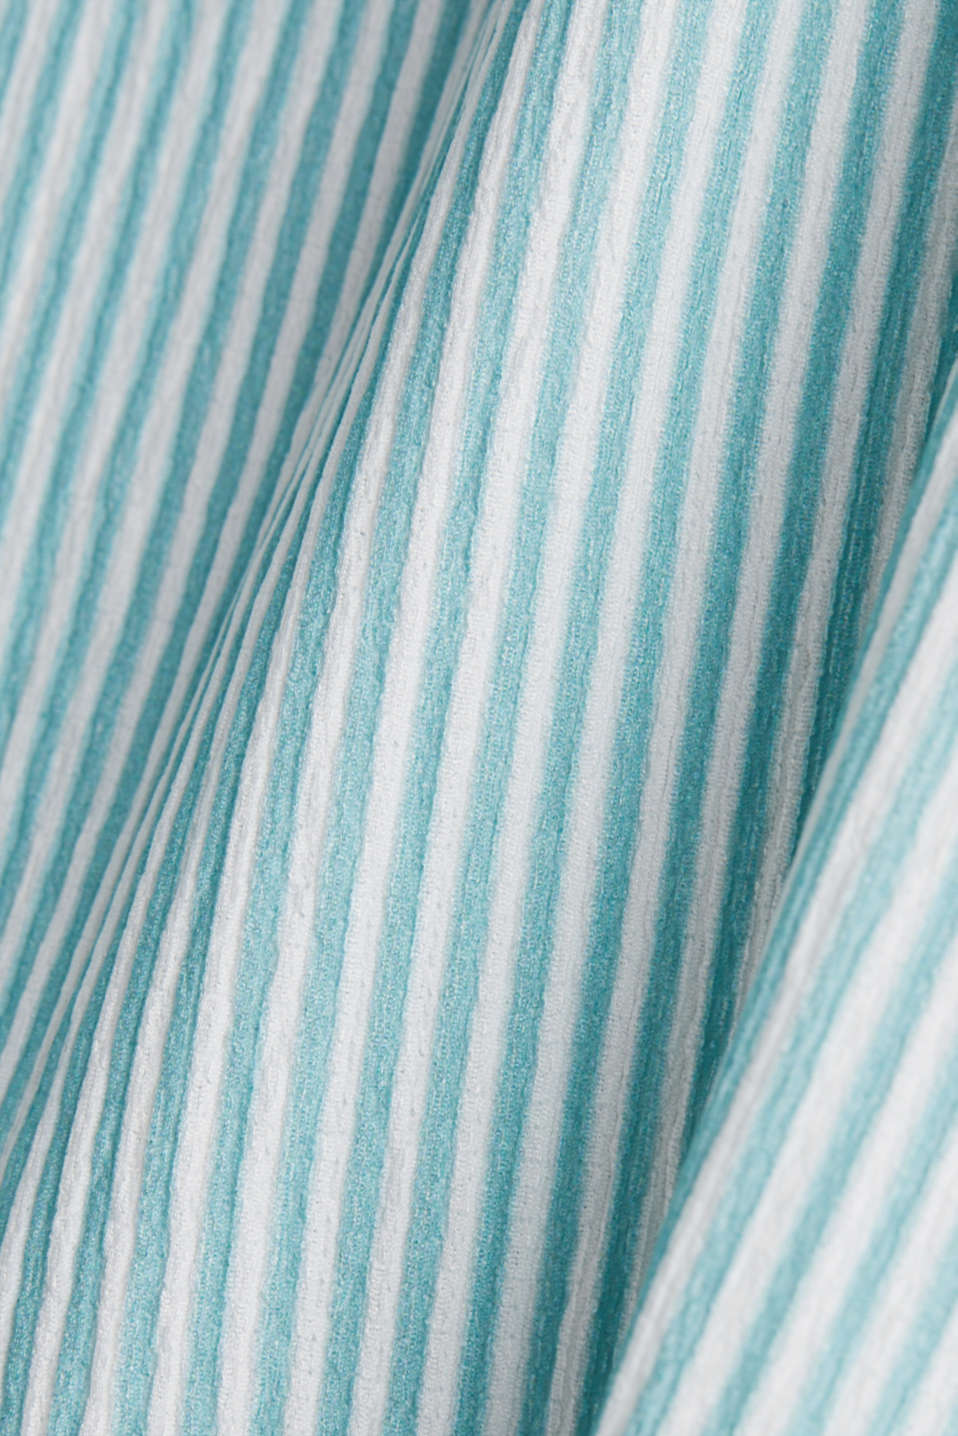 Striped blouse top, recycled, LIGHT AQUA GREEN, detail image number 4